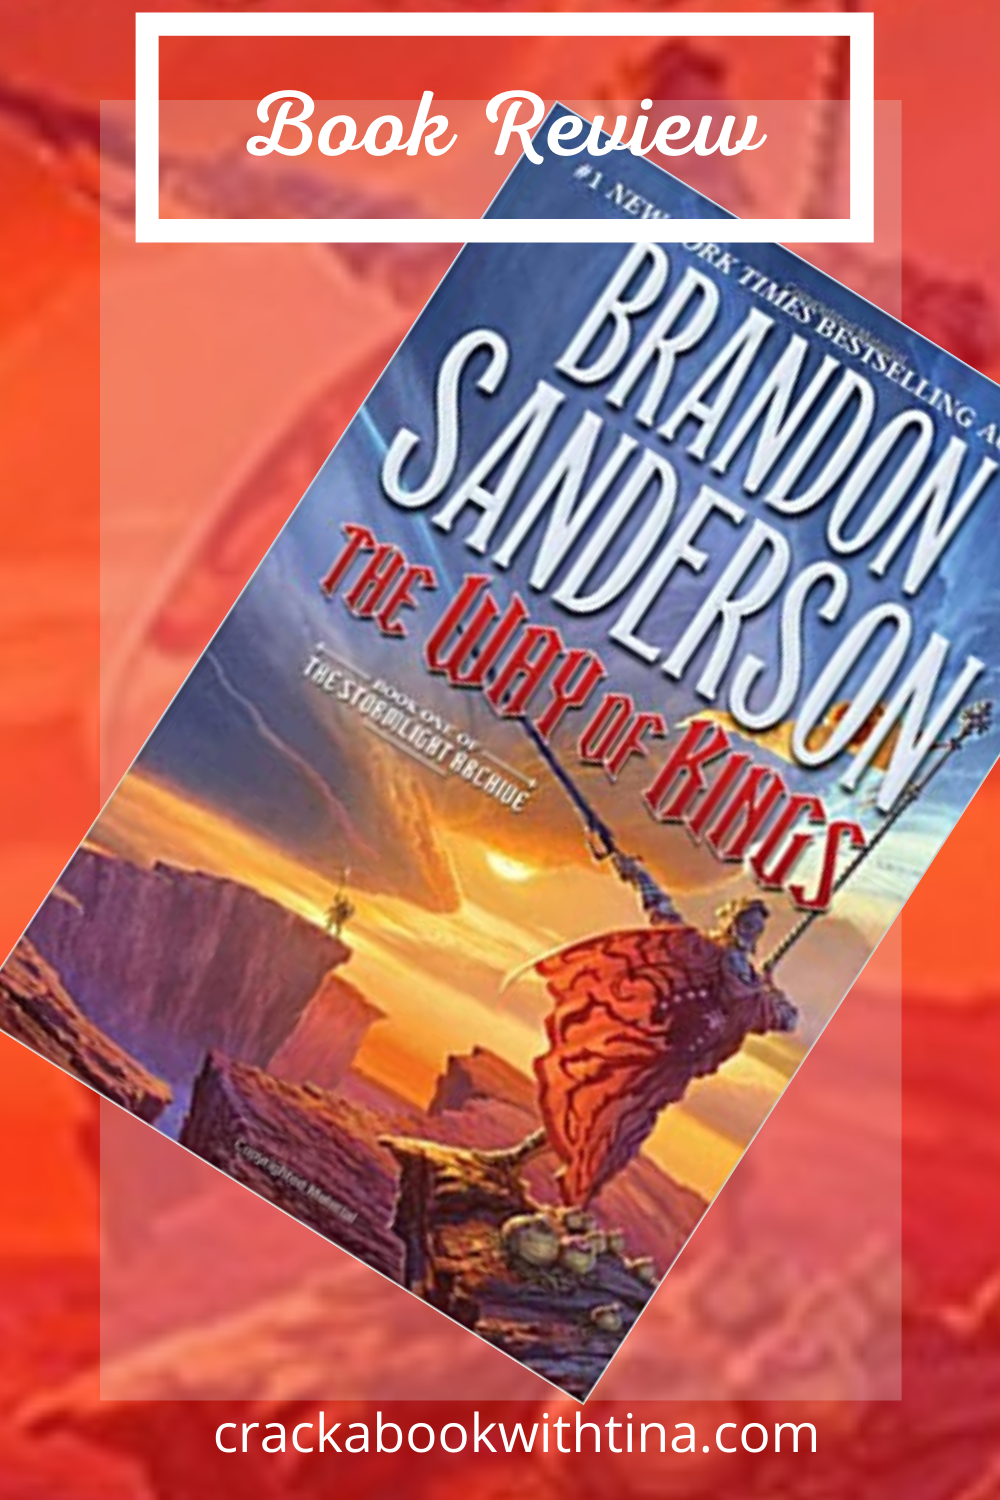 The Way of Kings by Brandon Sanderson